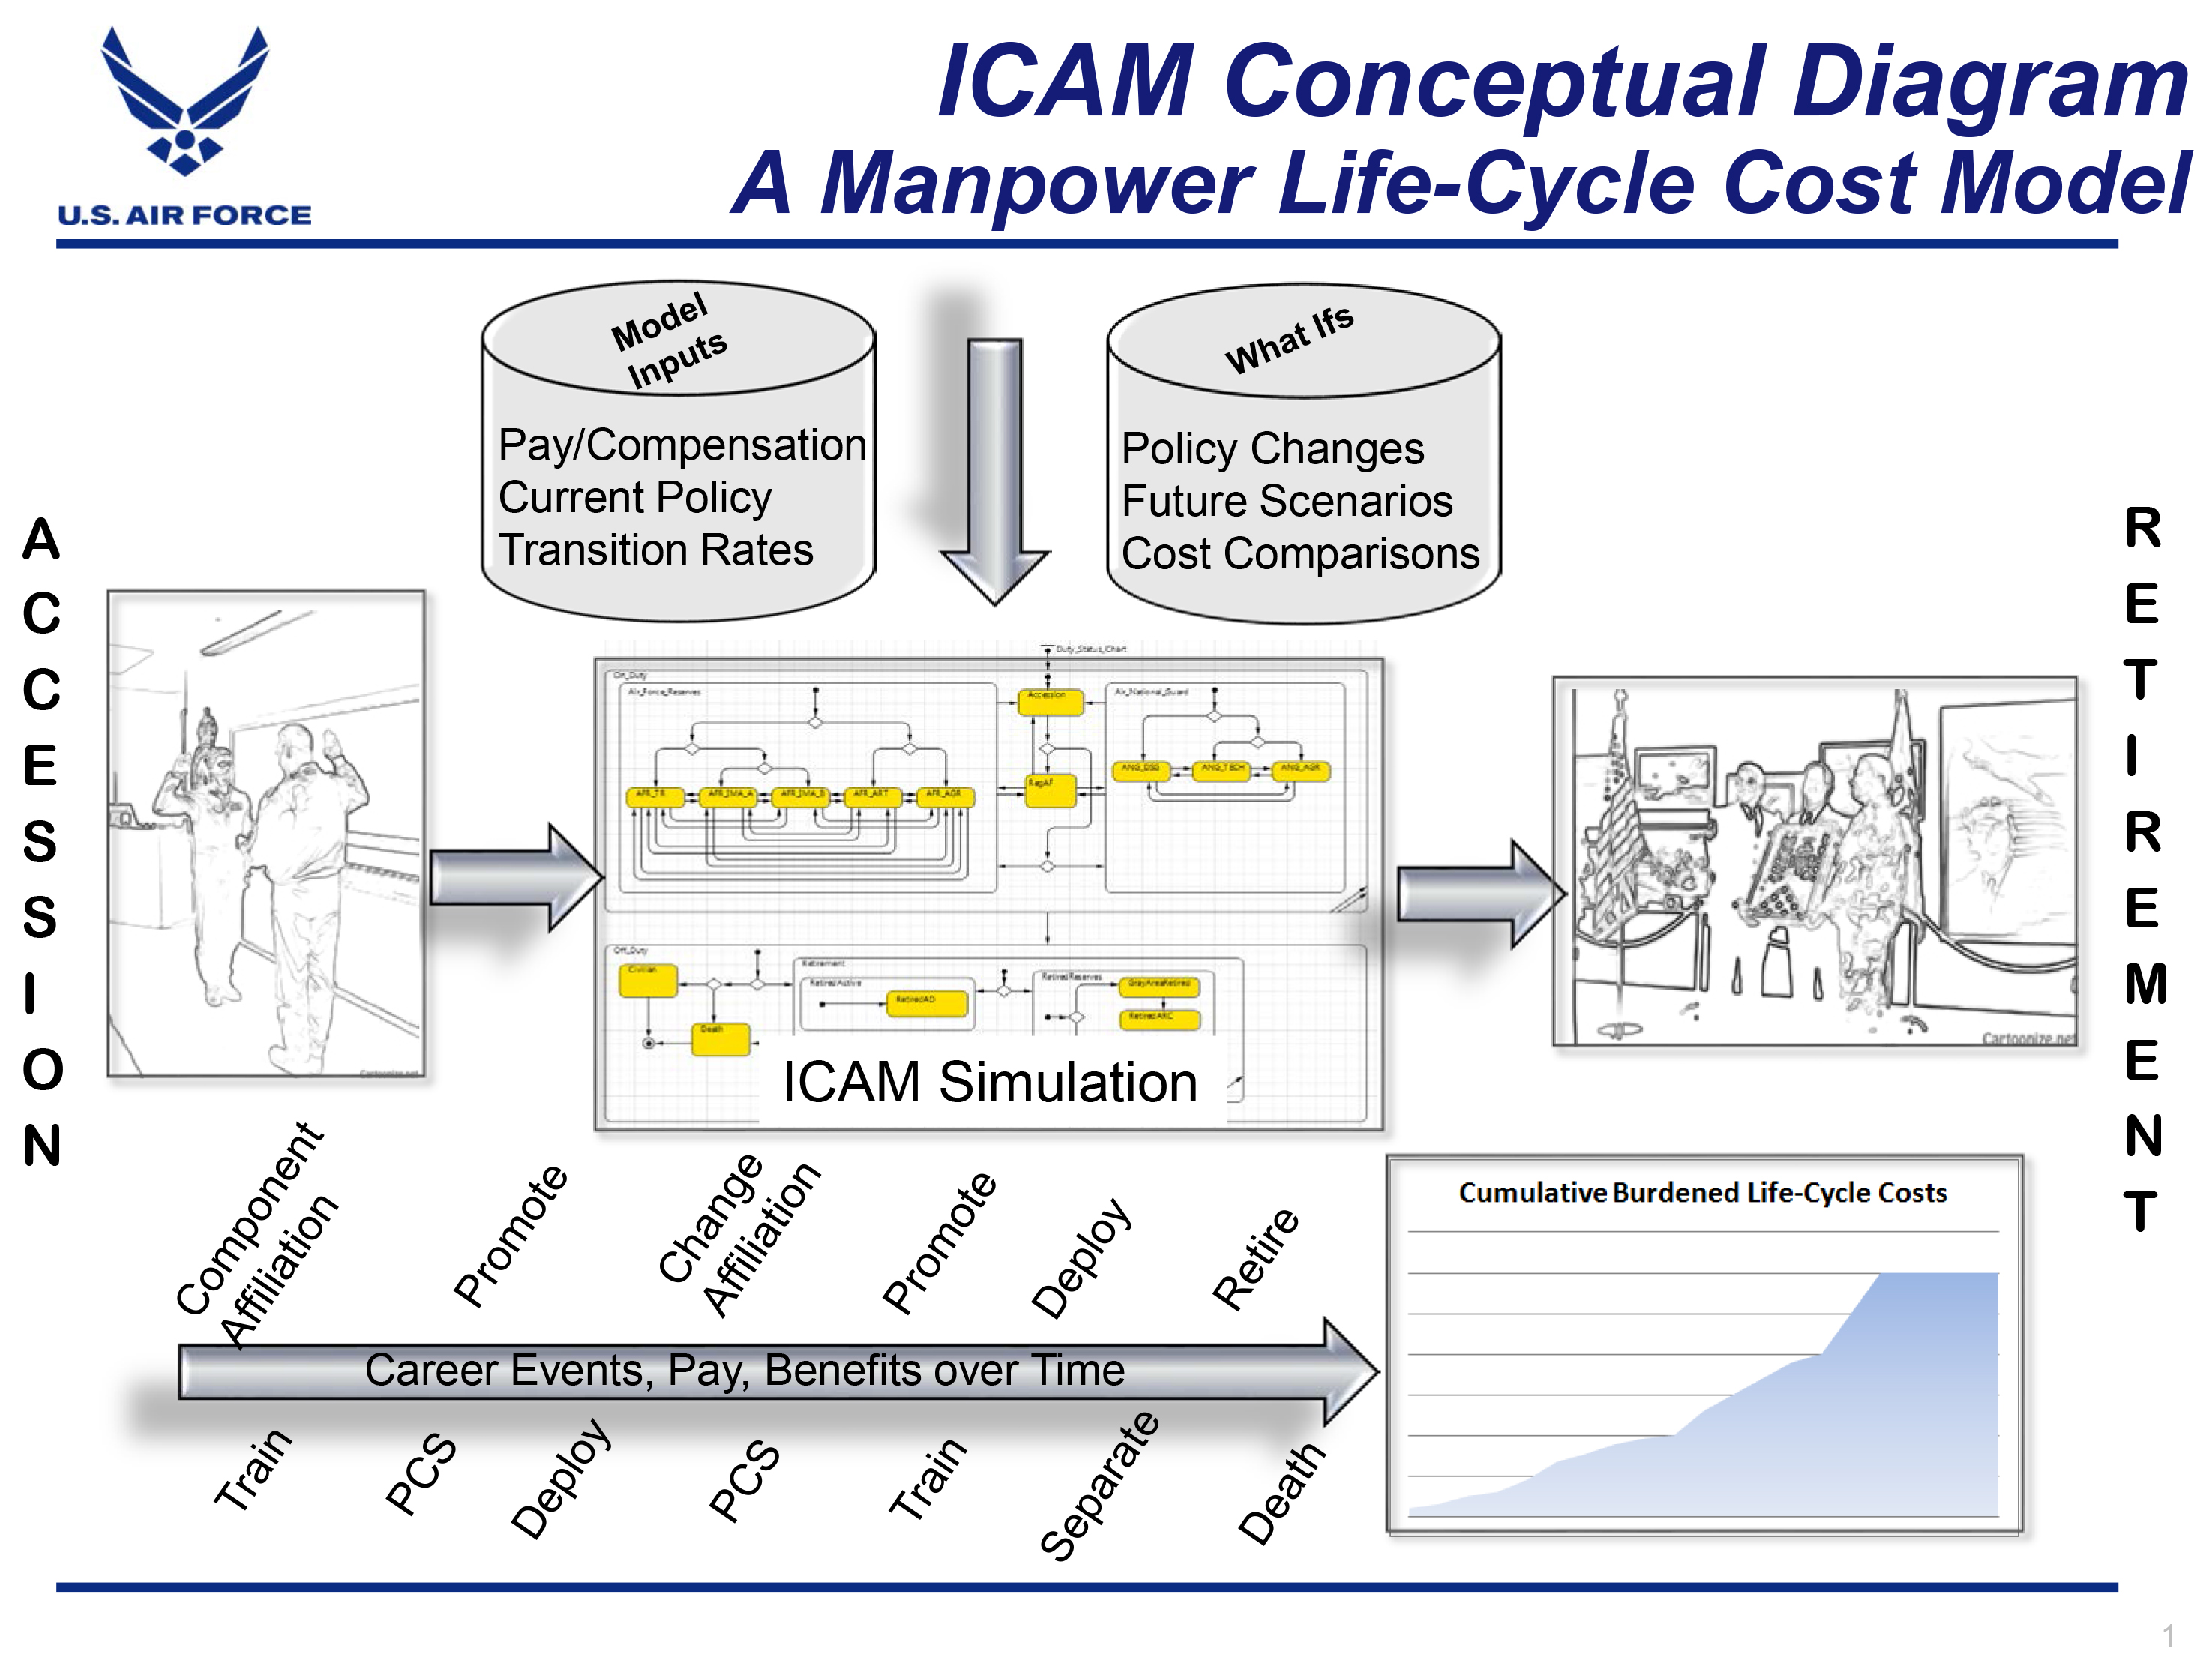 ICAM Conceptual Design of a manpower lyfe-cycle cost model